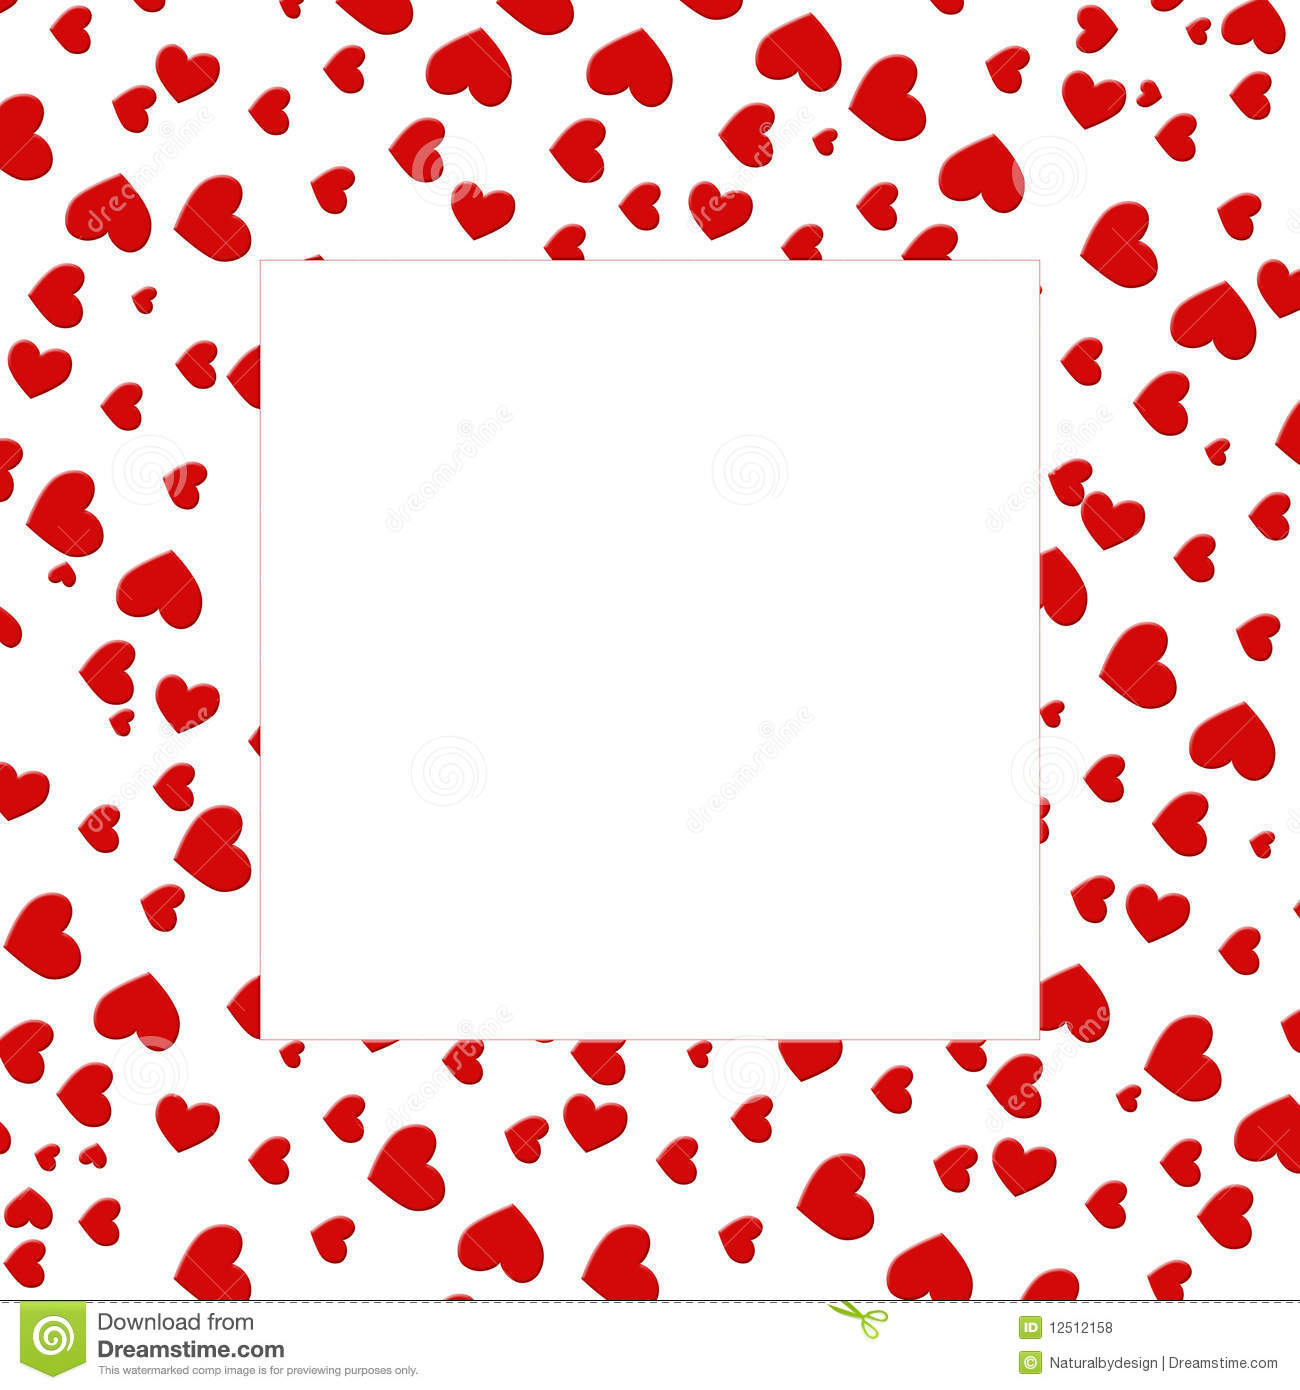 Heart Border Royalty Free Stock Photos - Image: 12512158